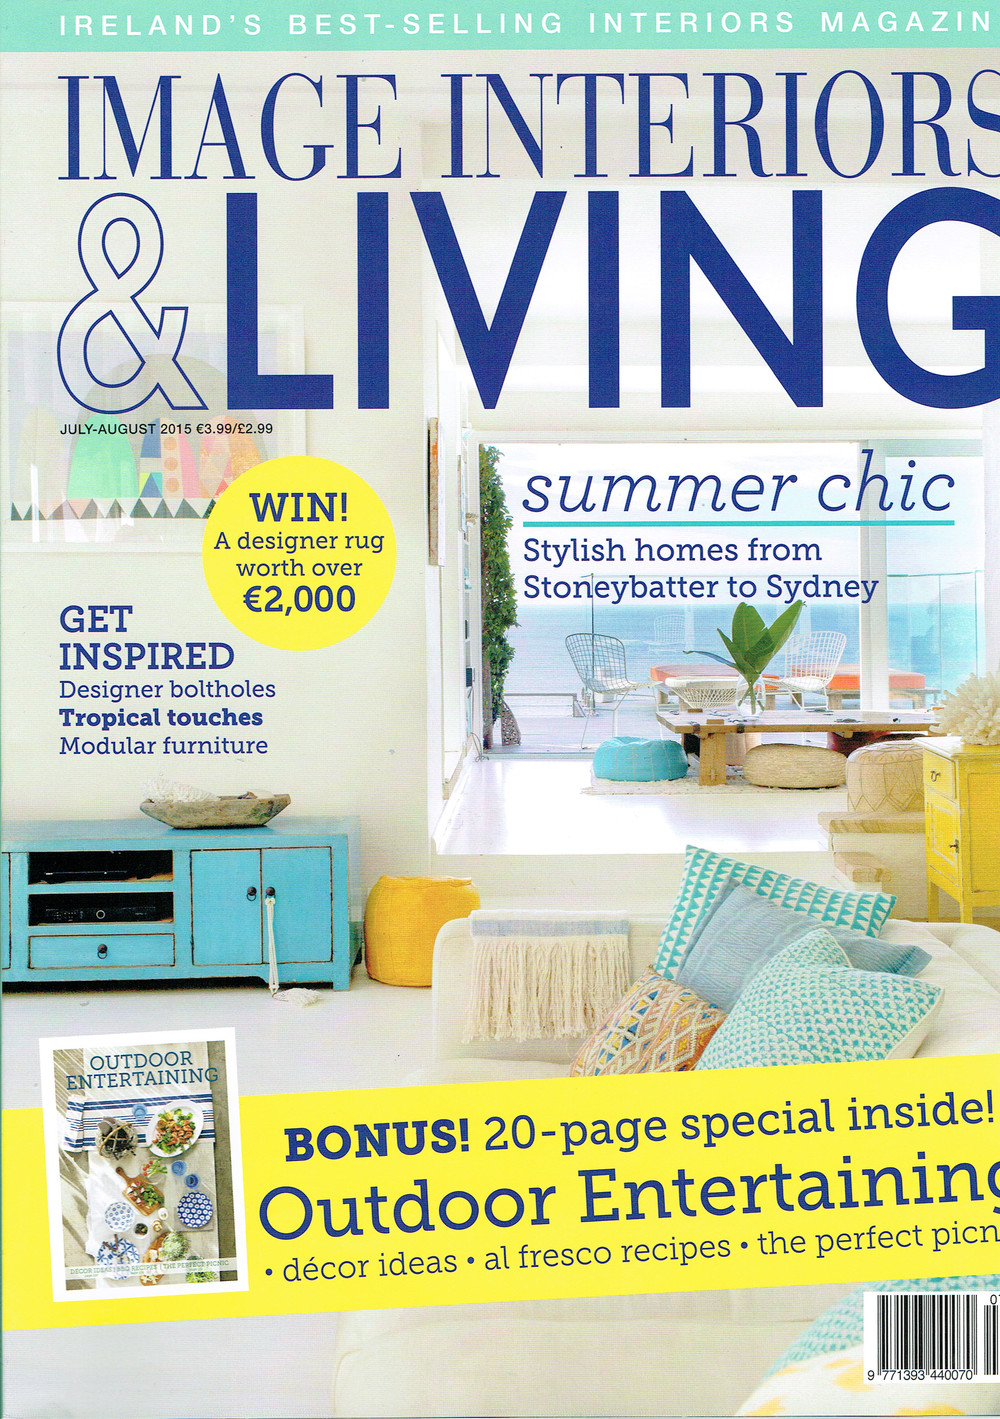 Image Interiors front cover July August.jpg